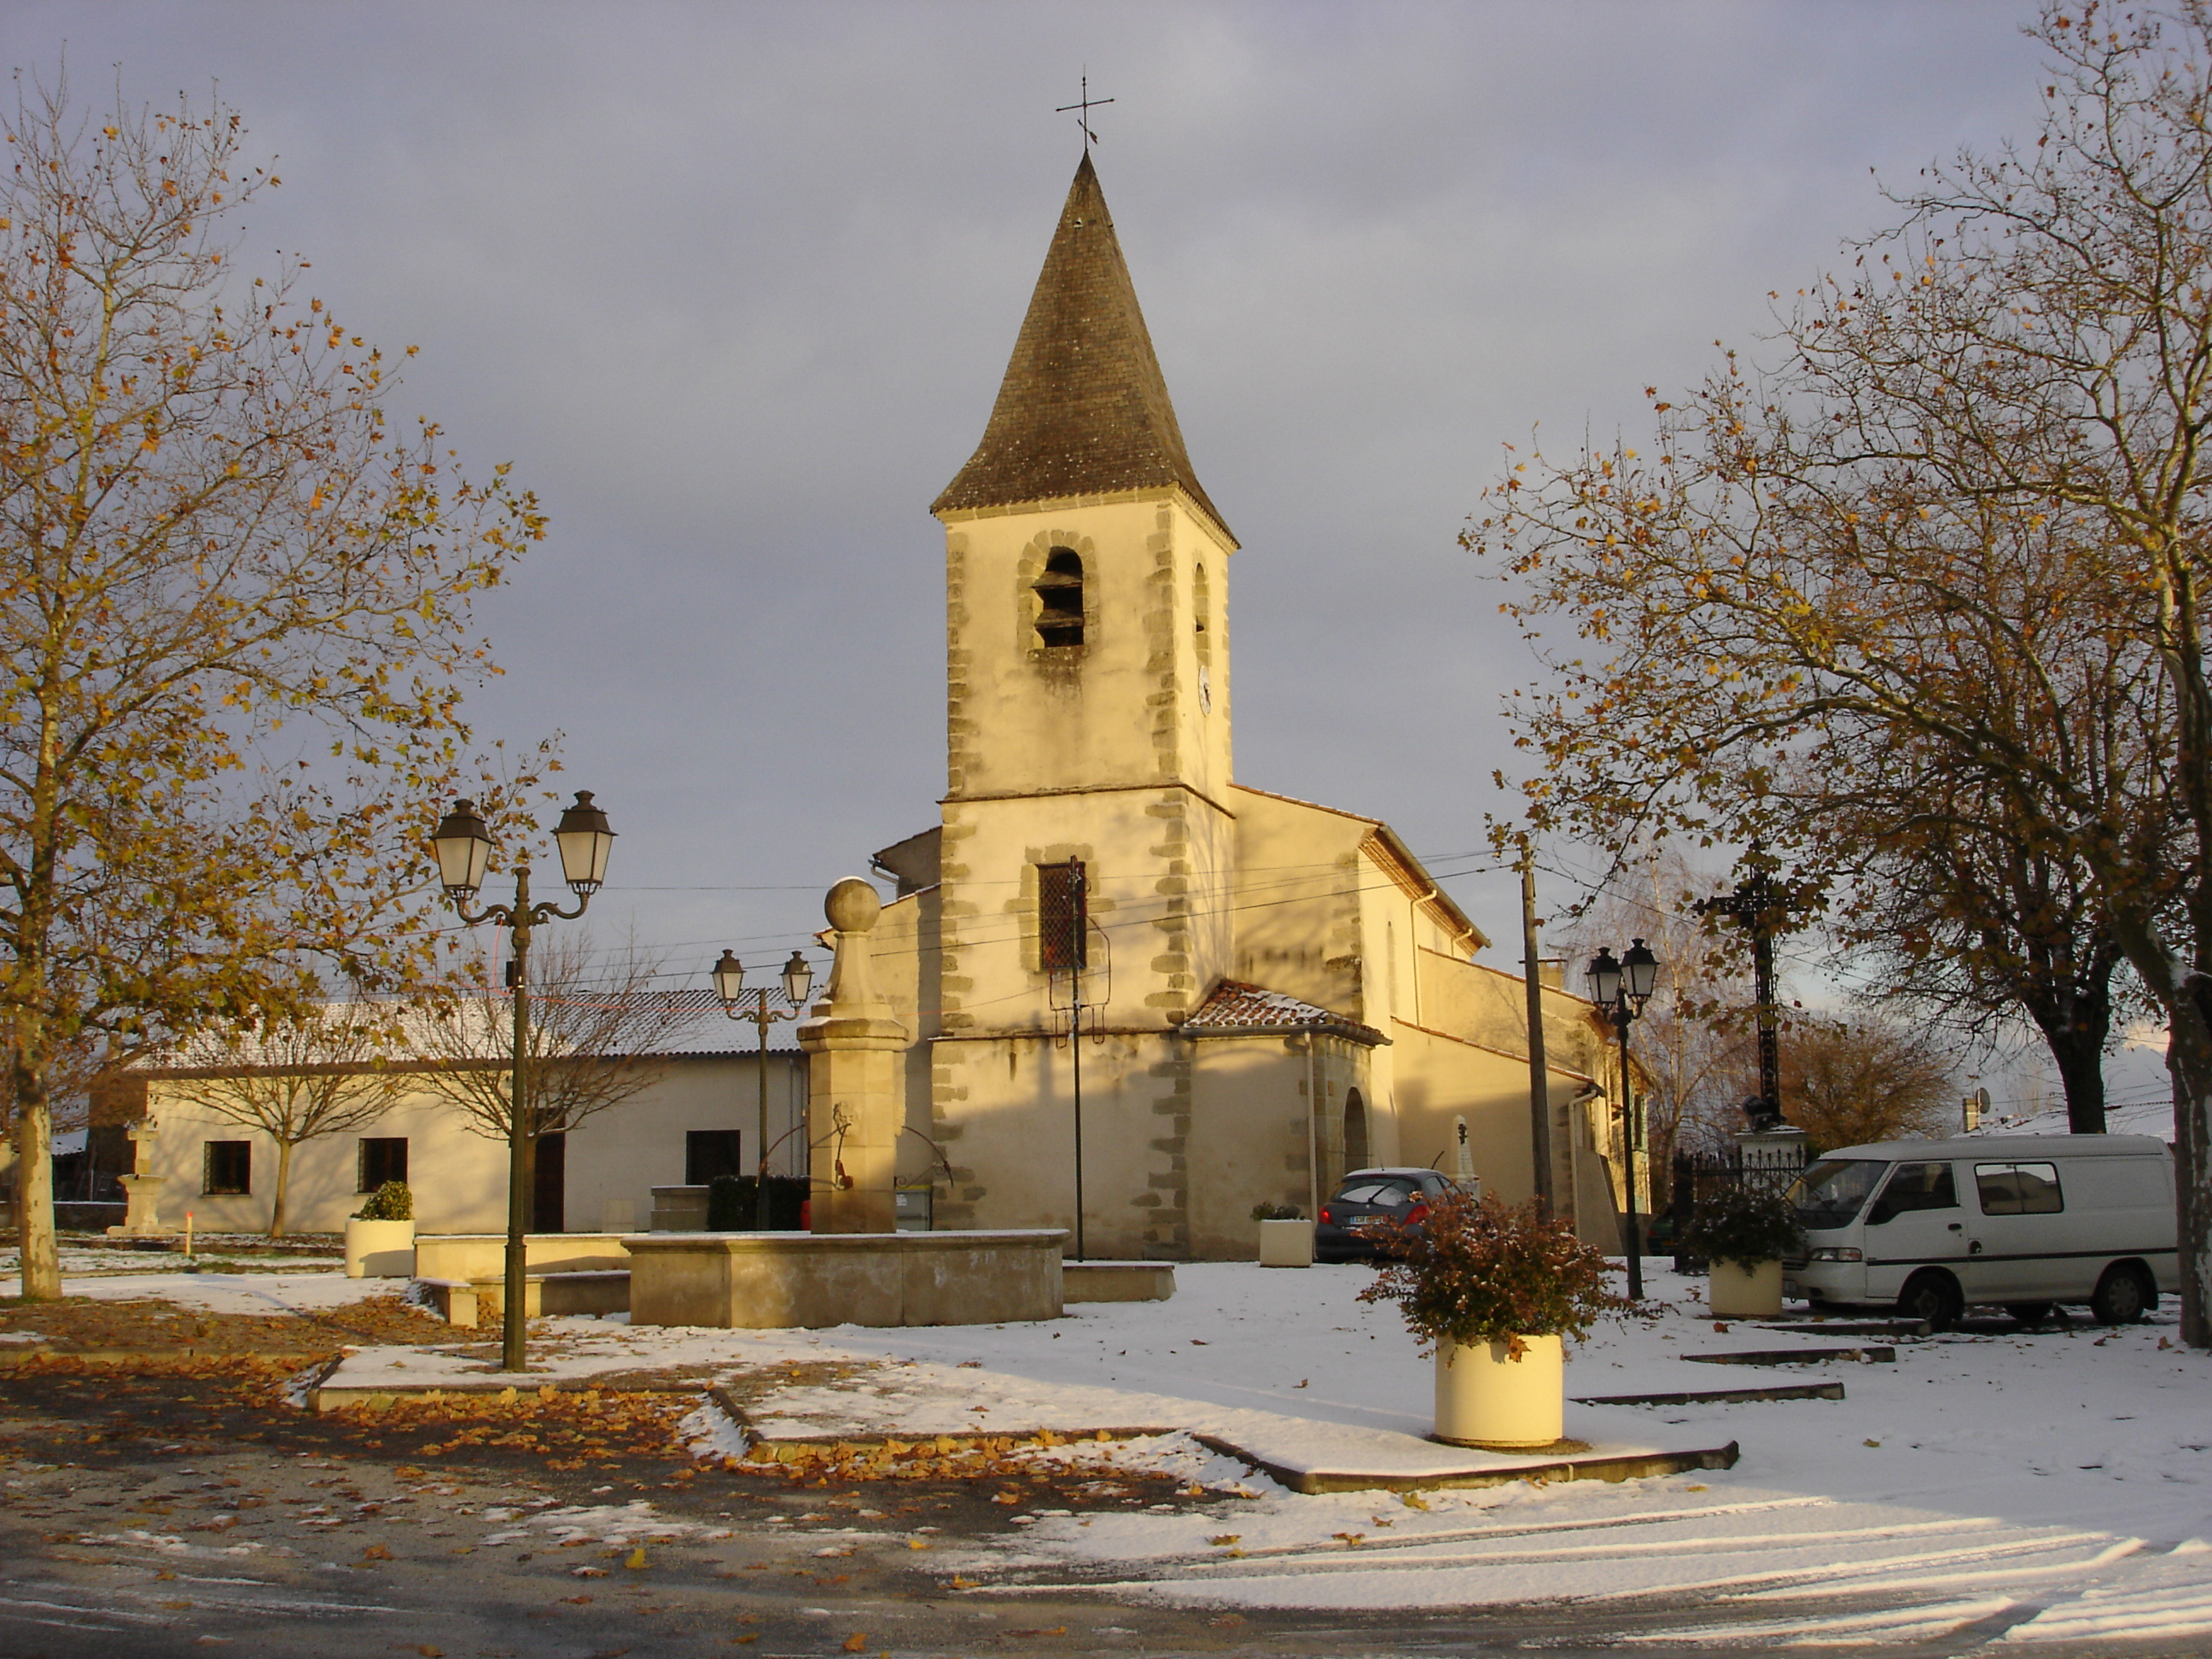 Église _ Place du village 1 _DSC03590_.JPG